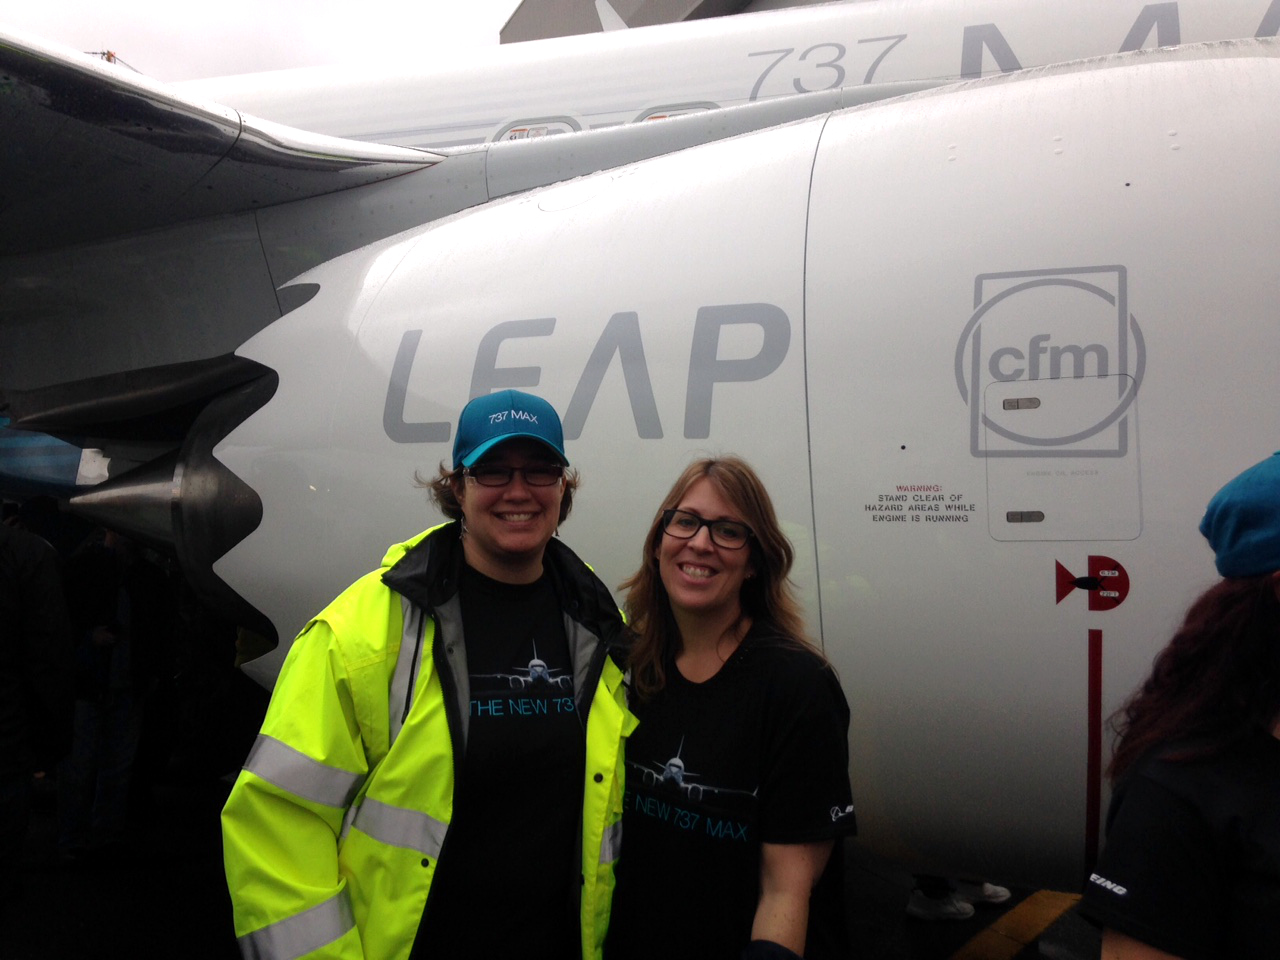 Cristina (right) and a GE field service engineer who is working in Seattle on the LEAP program. Image: